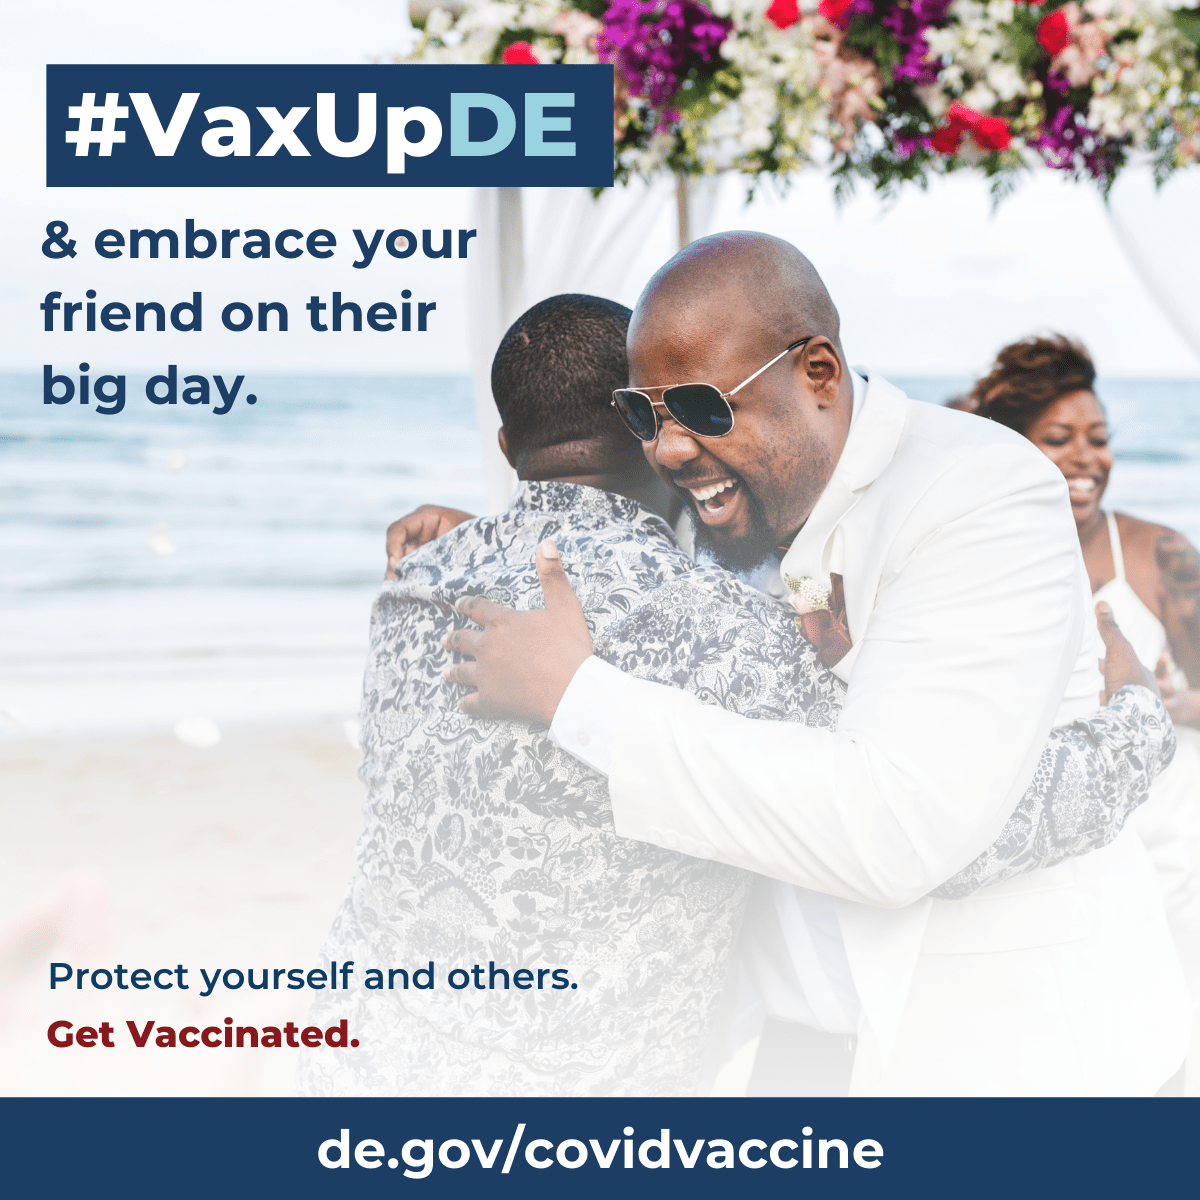 VaxUpDE Protect yourself and others. Get vaccinated. Two men embrace while at a wedding.